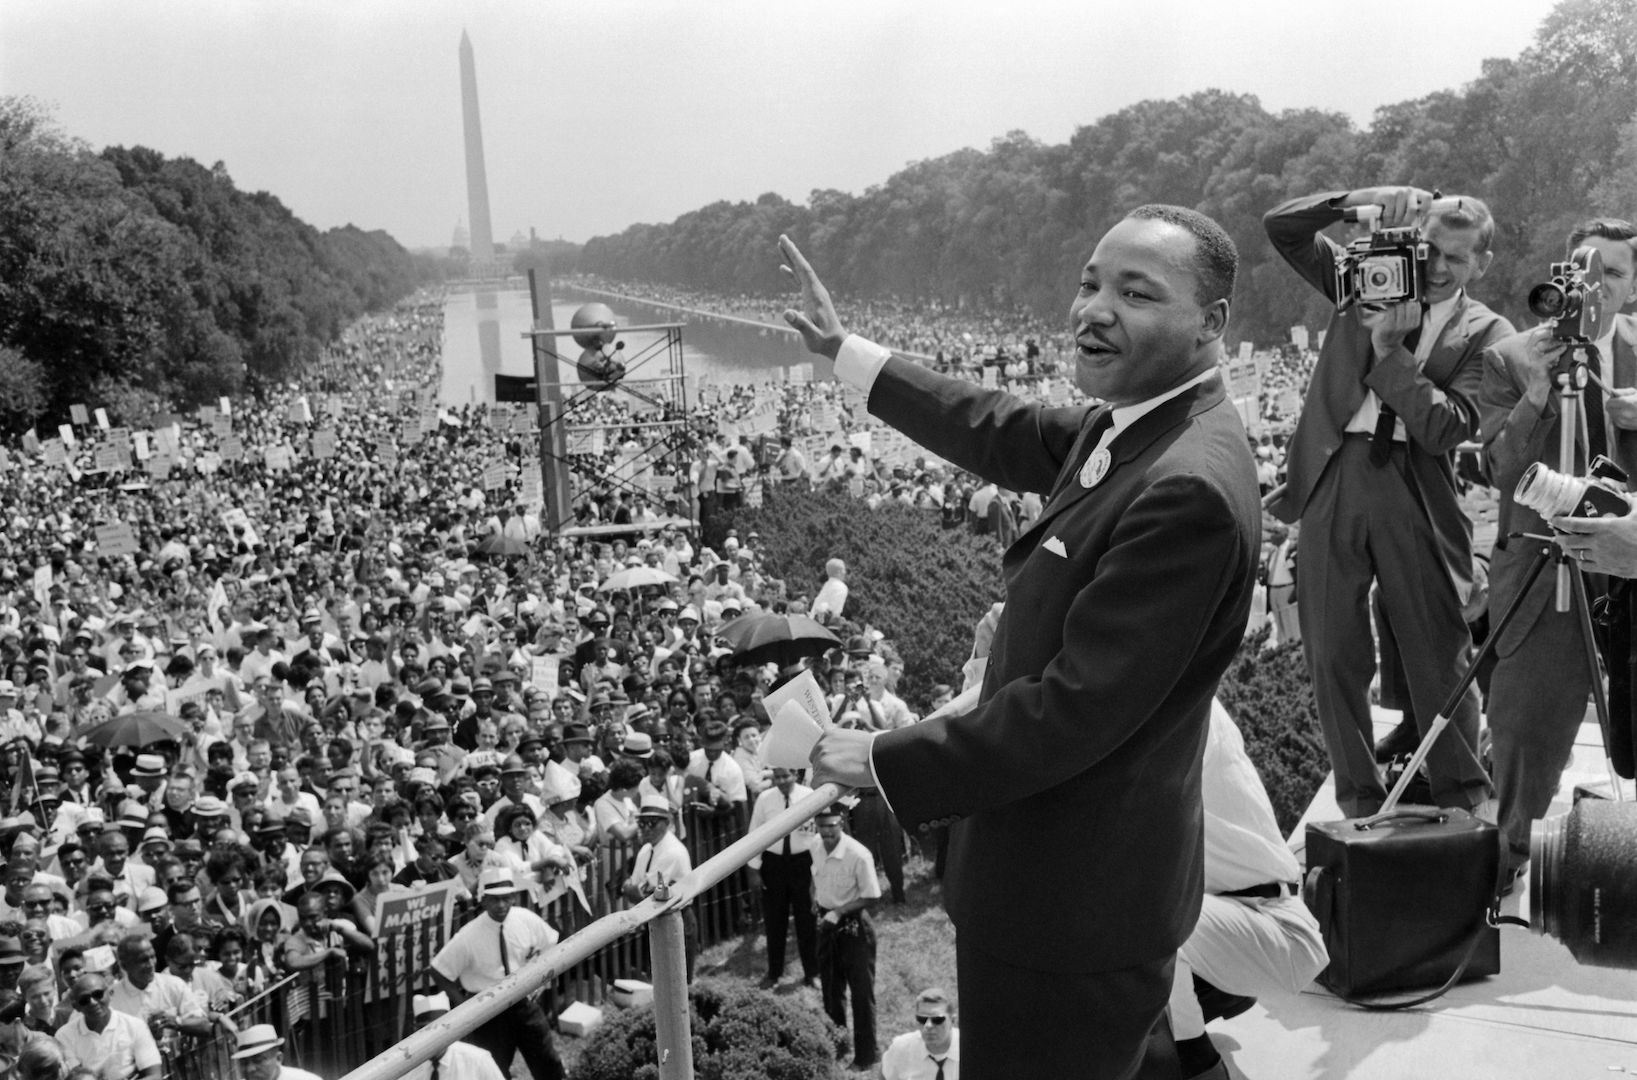 """The civil rights leader Martin Luther King Jr. waves to supporters on Aug. 28, 1963 on the Mall in Washington D.C. (Washington Monument in background) during the """"March on Washington."""""""